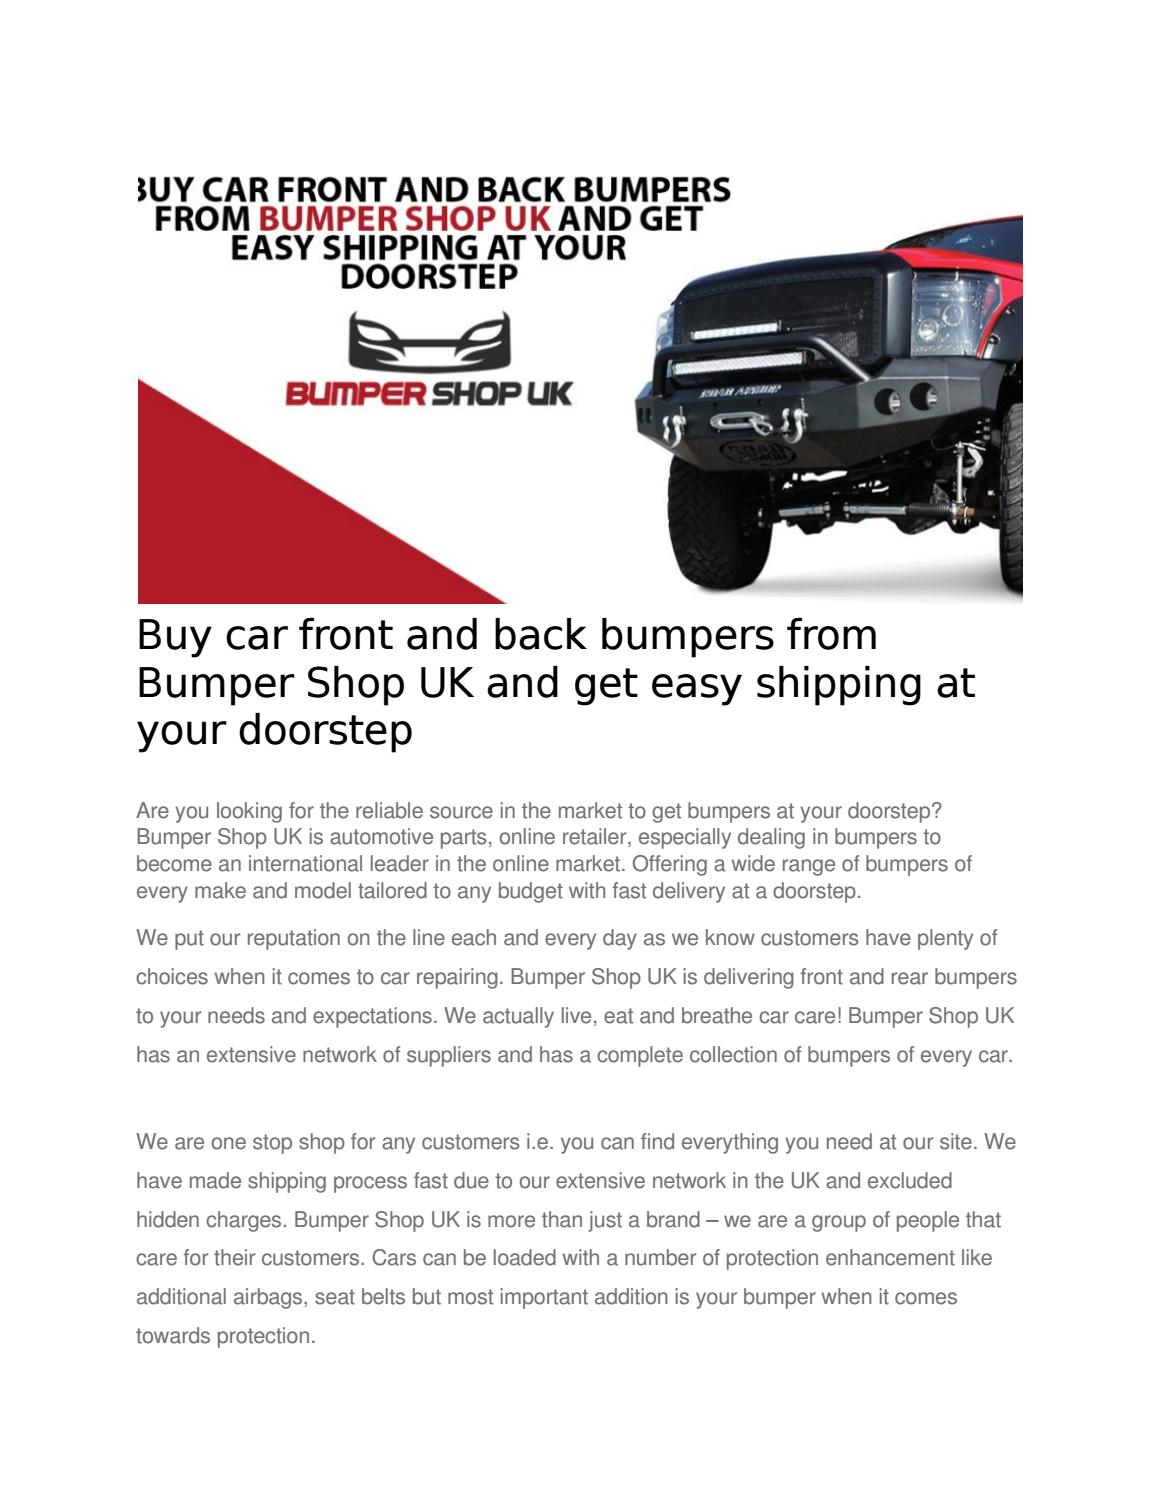 Buy Car Front And Back Bumpers From Bumper Shop Uk And Get Easy Shipping At Your Doorstep By Bumpershop Issuu